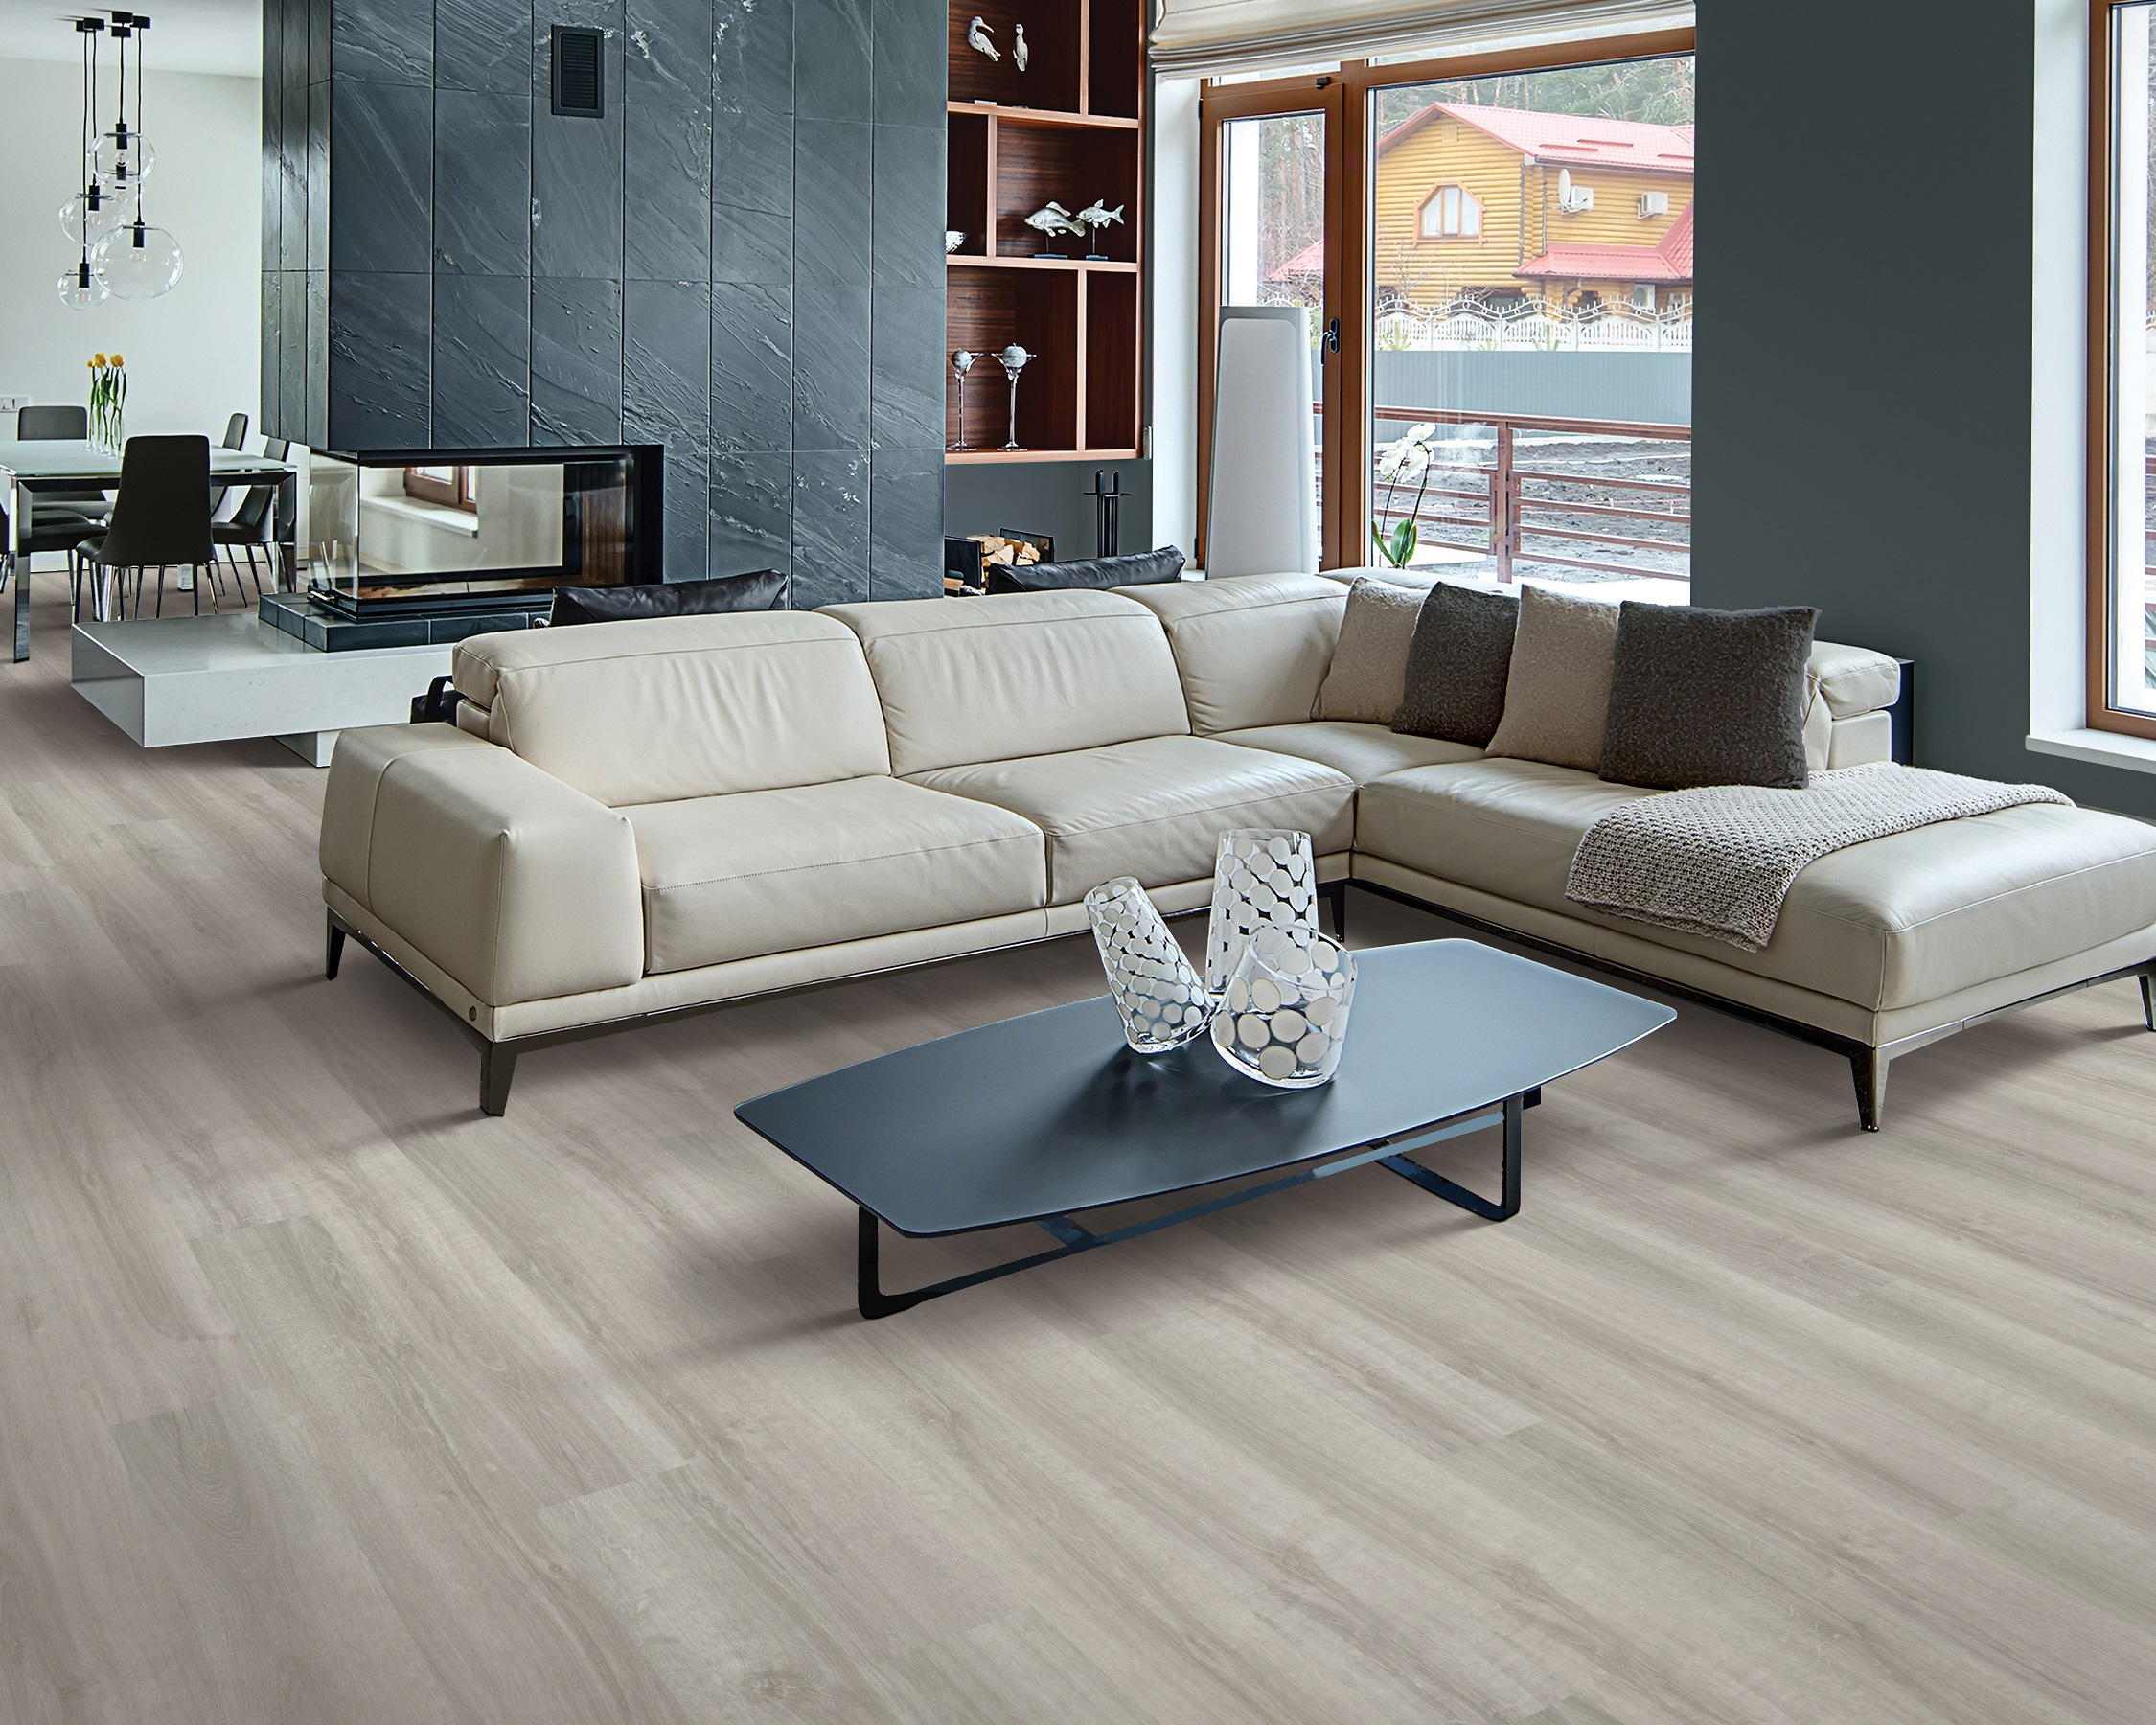 Family-friendly vinyl plank flooring in a Steubenville, OH home